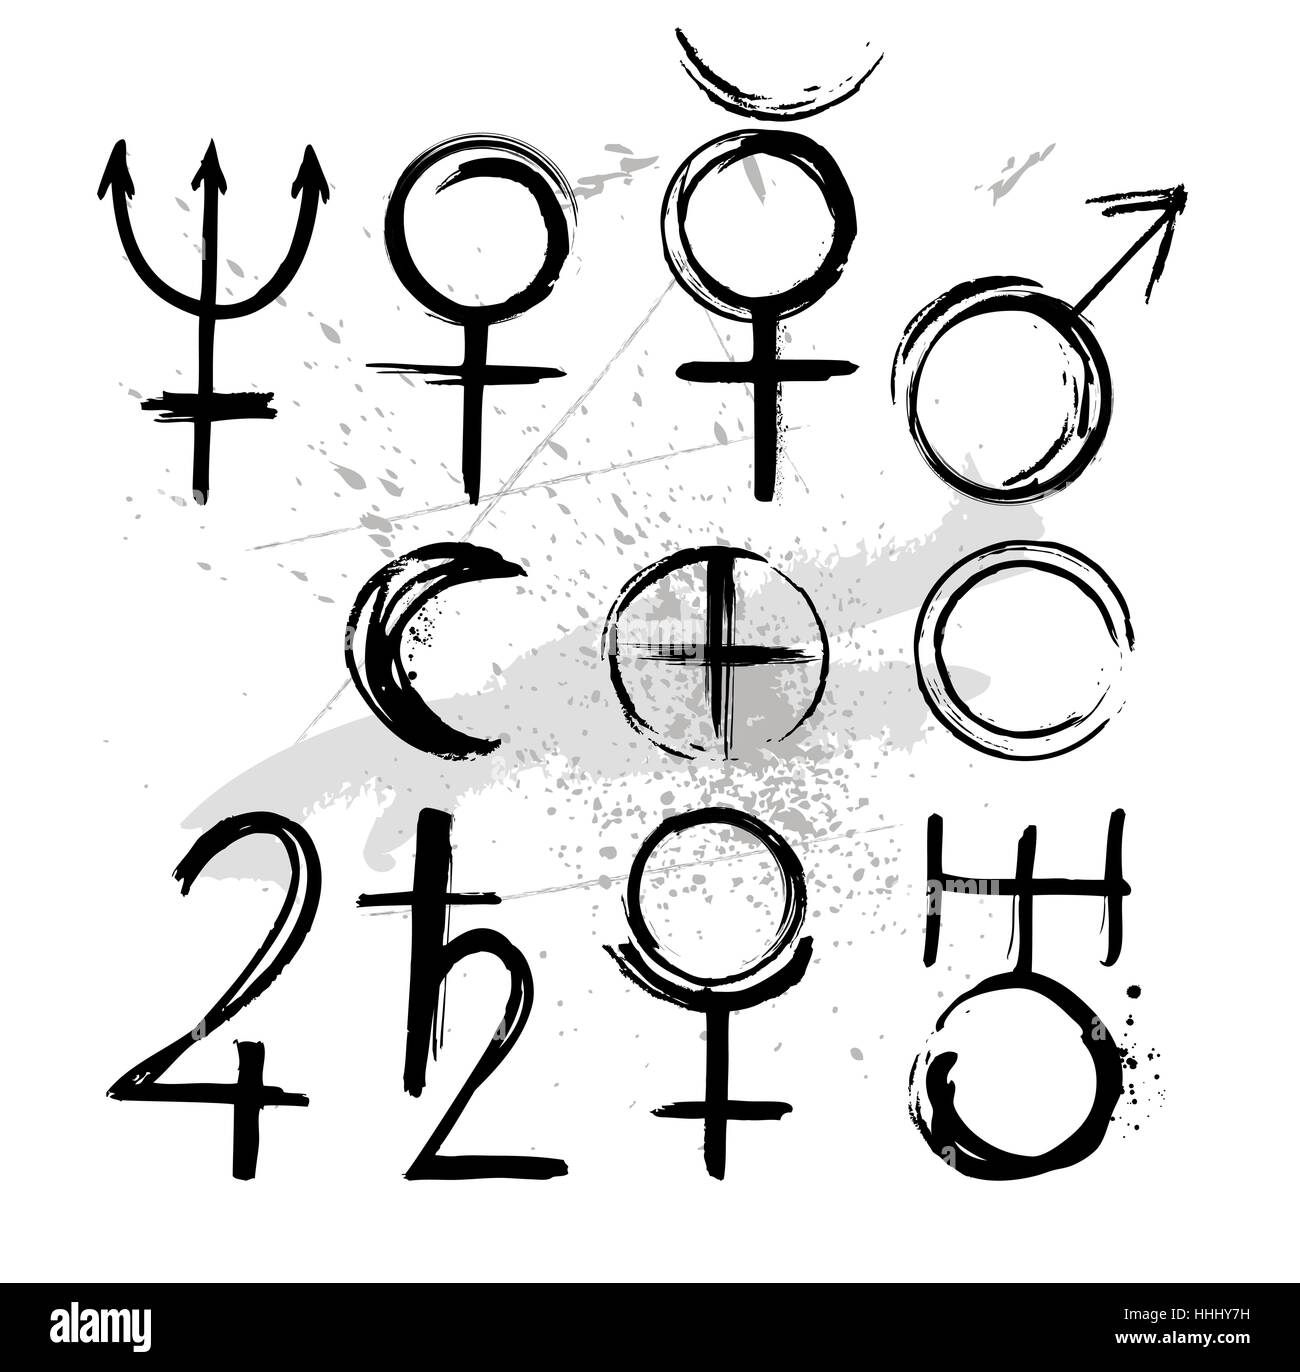 Symbols Of The Planets Of Solar System Mercury Venus Earth Moon